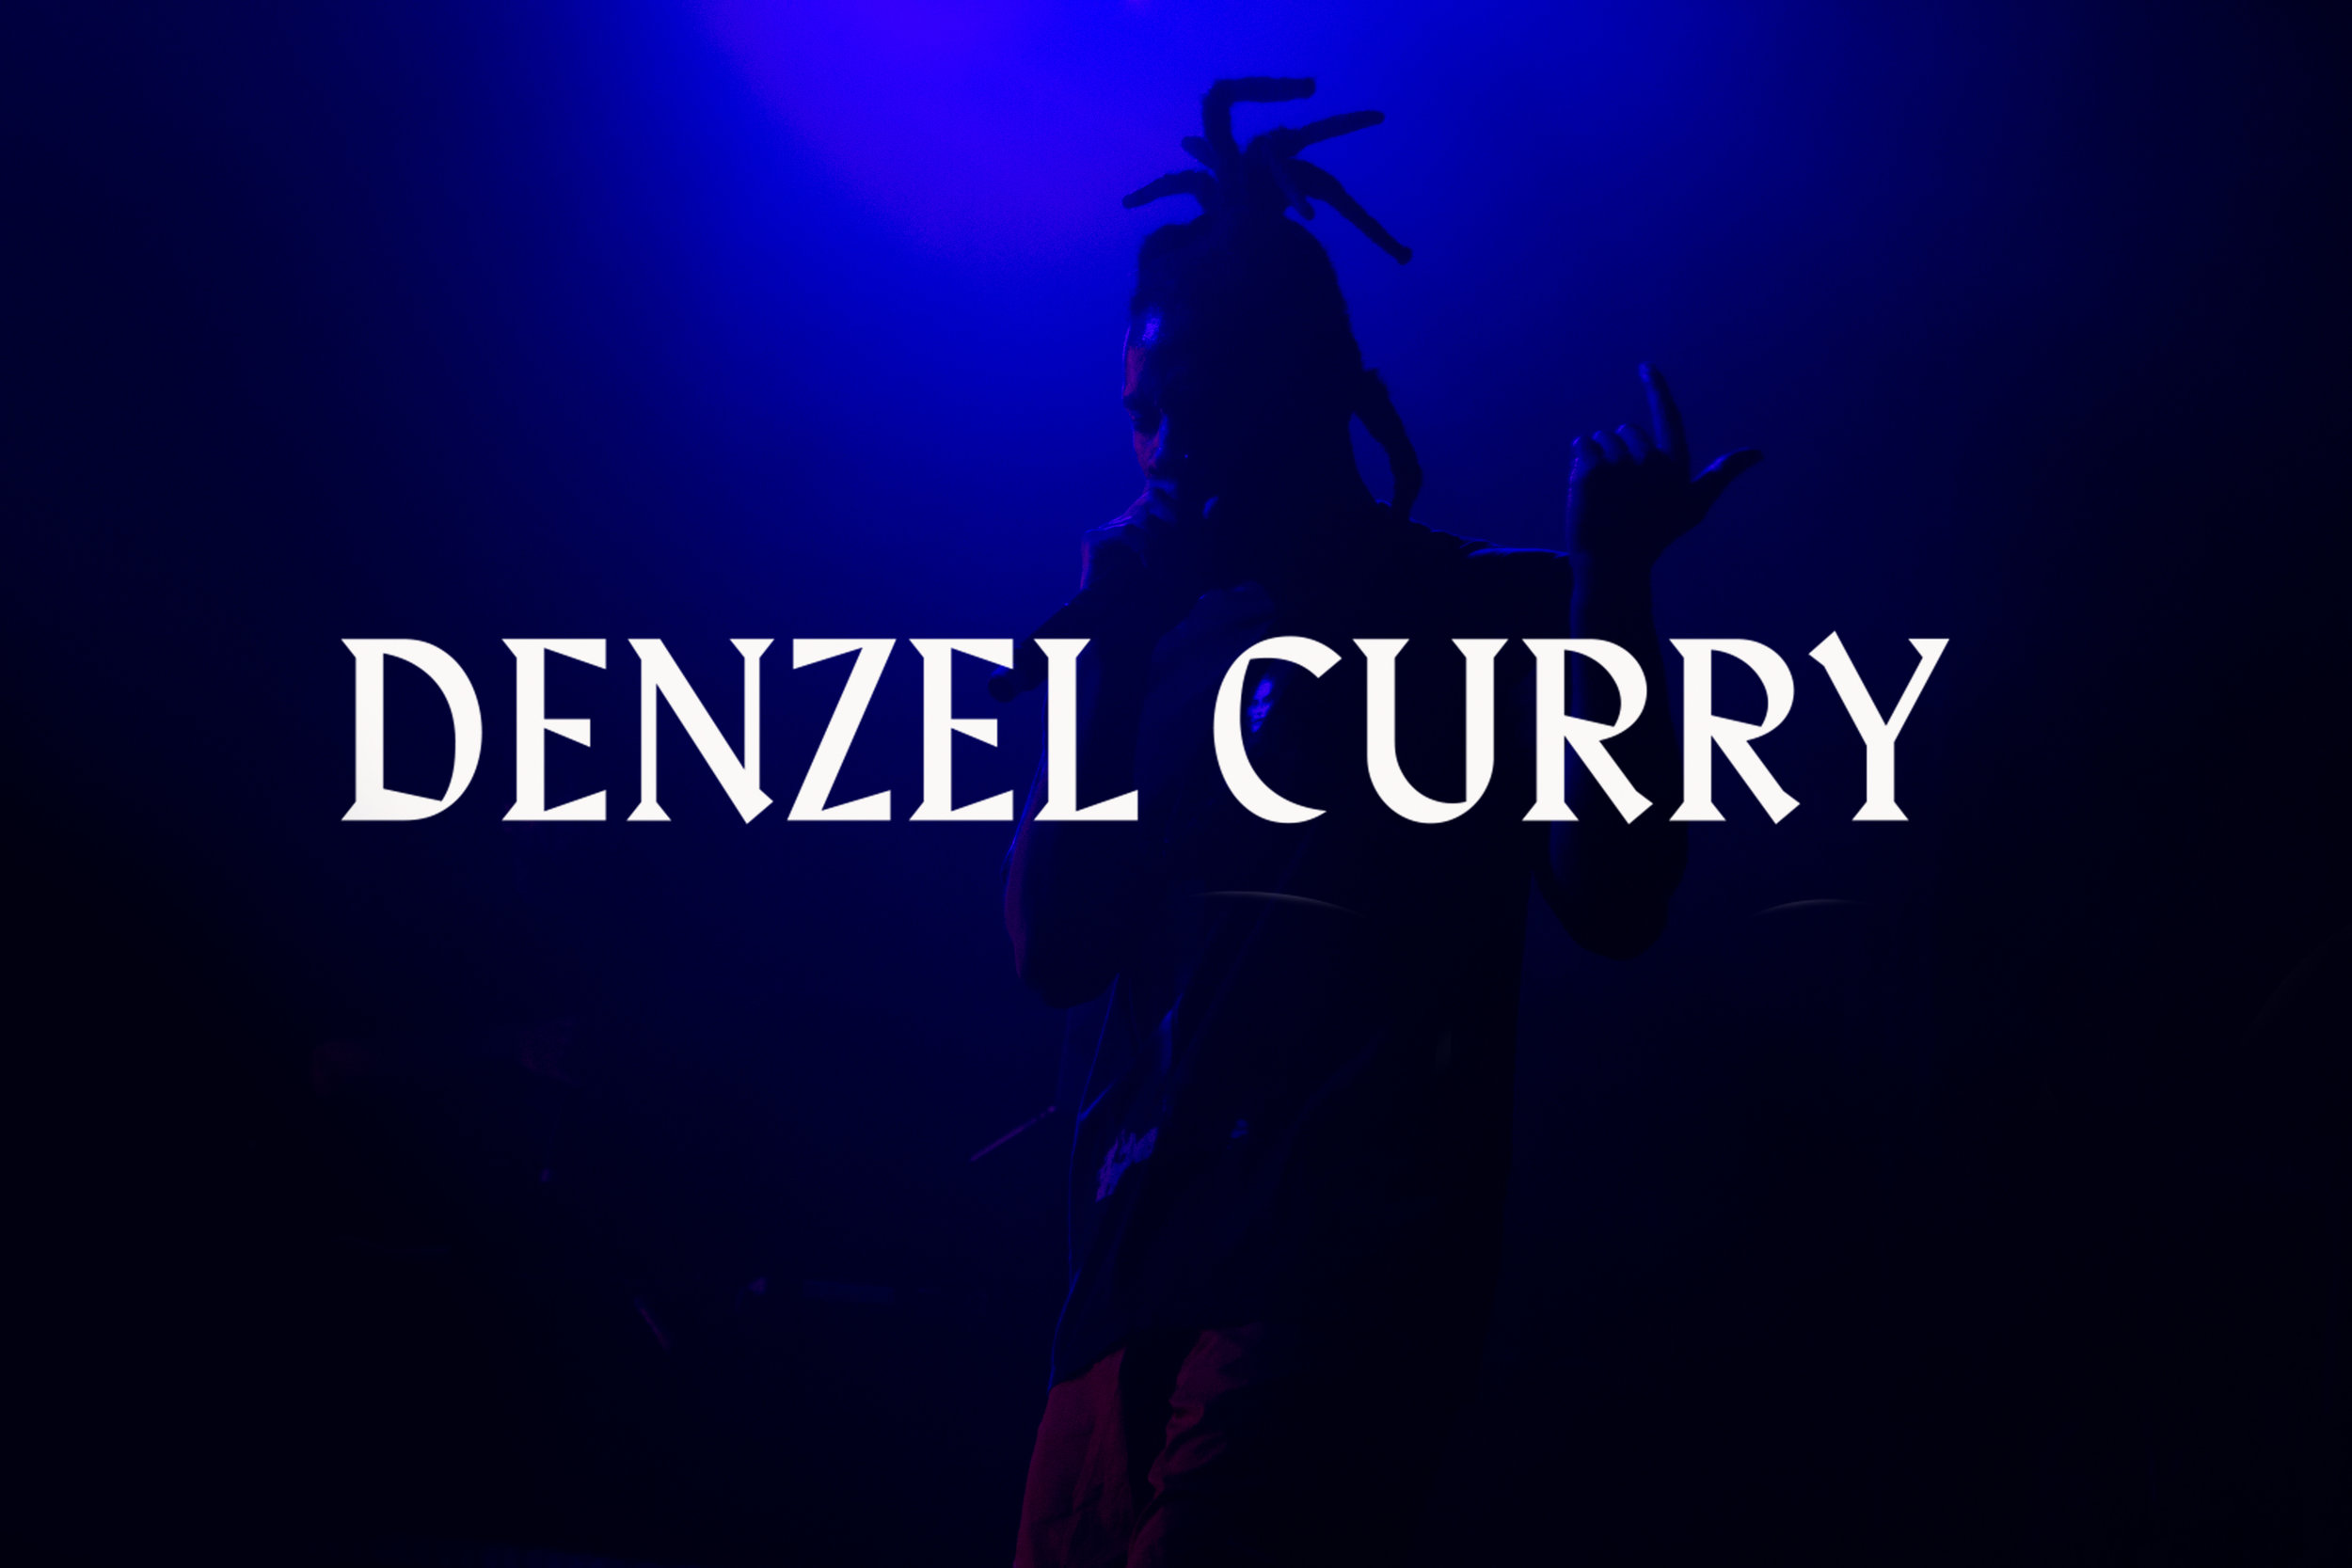 Denzel-Curry-title.jpg